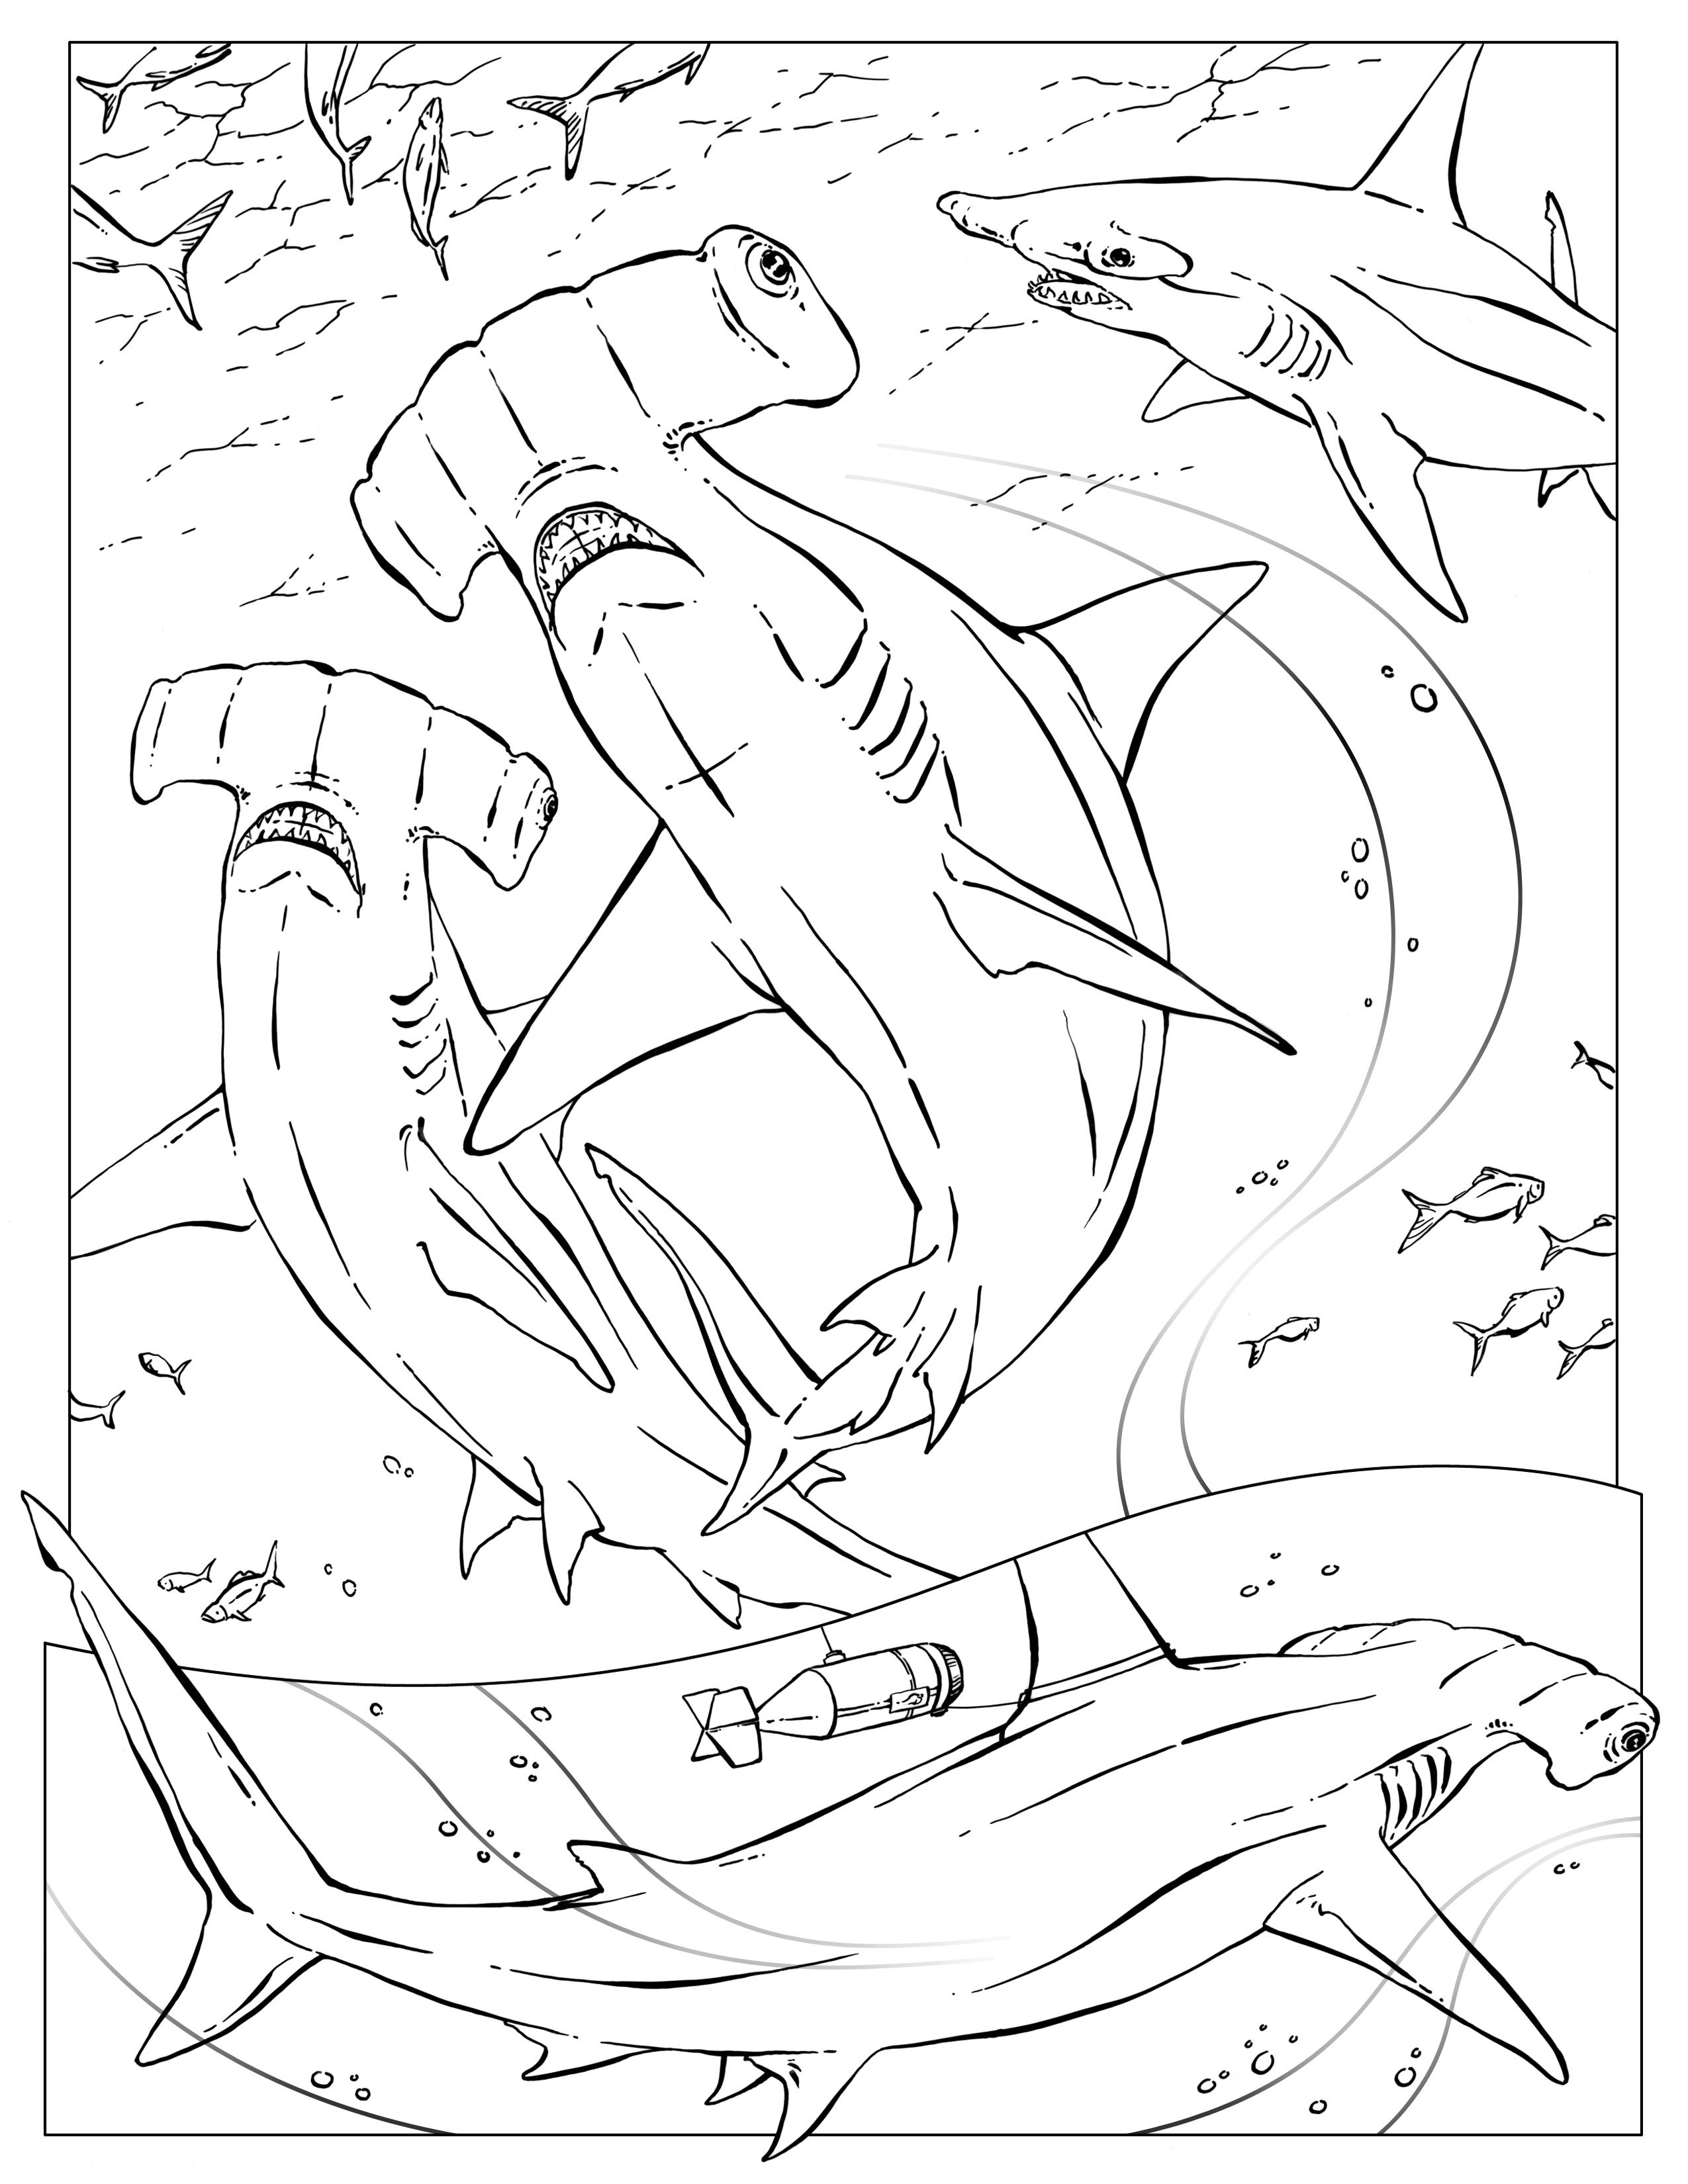 coloring pages sharks printable shark coloring pages and posters sharks printable pages coloring